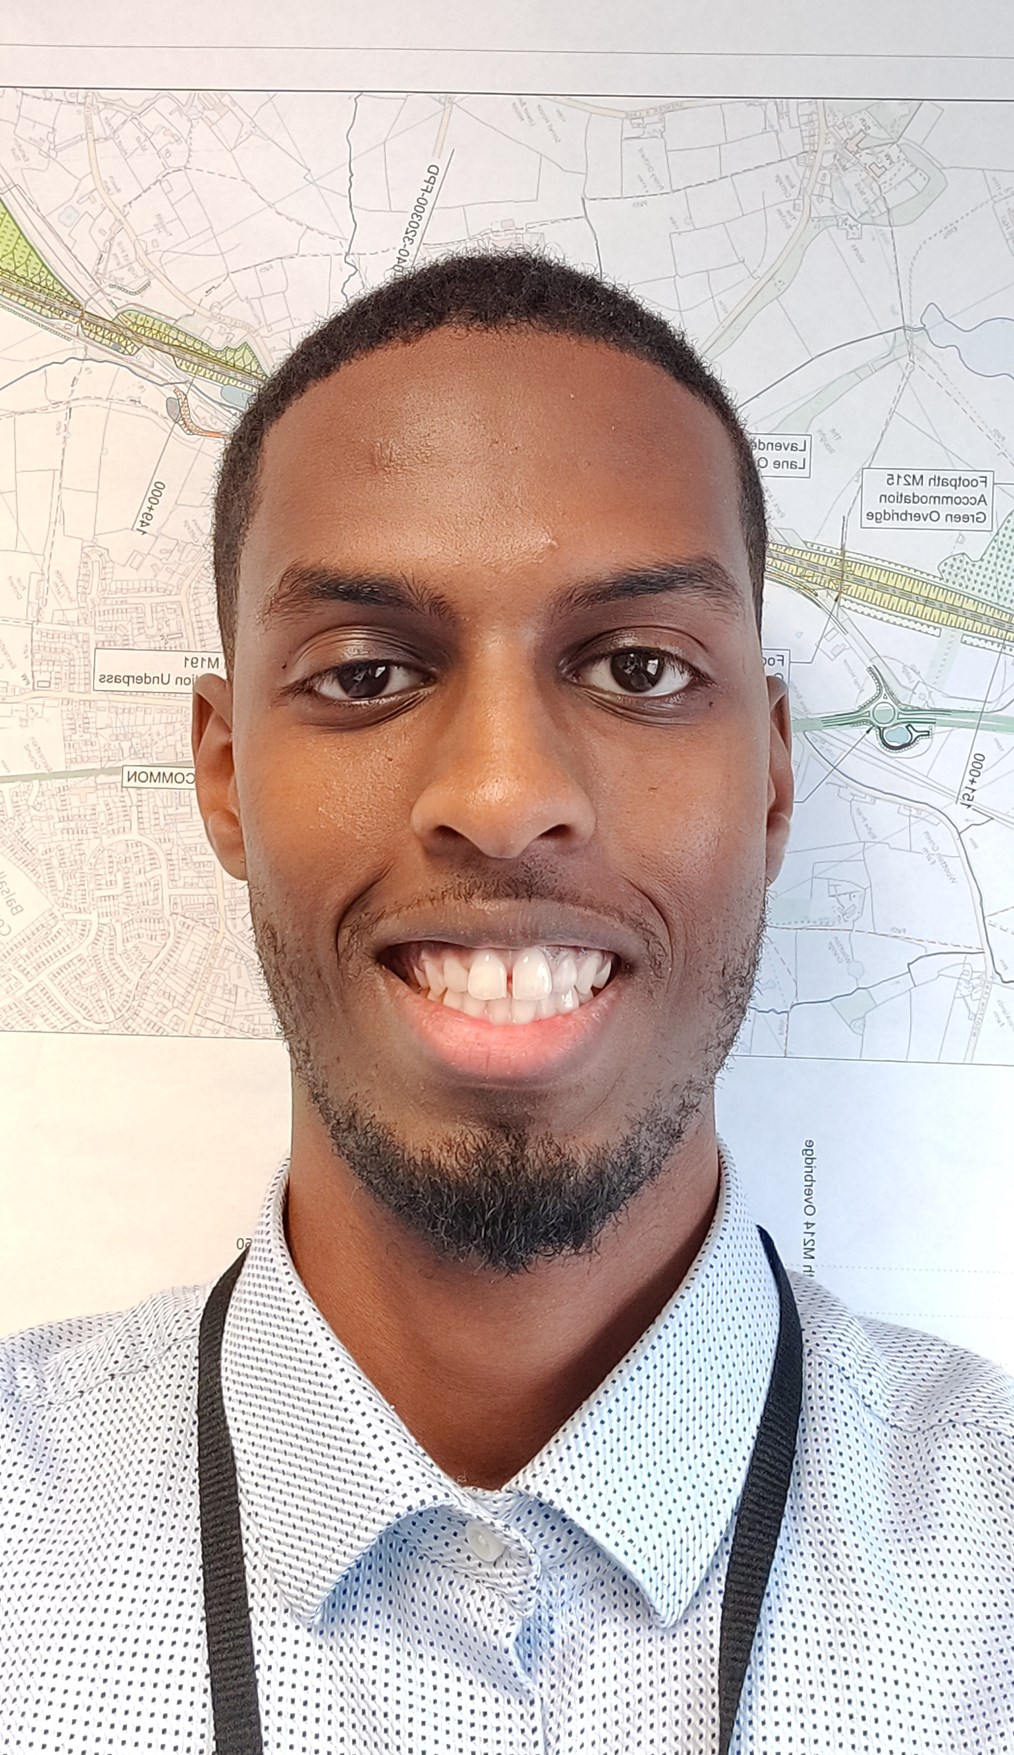 BCU graduate Ahmed is now working for BBV on HS2